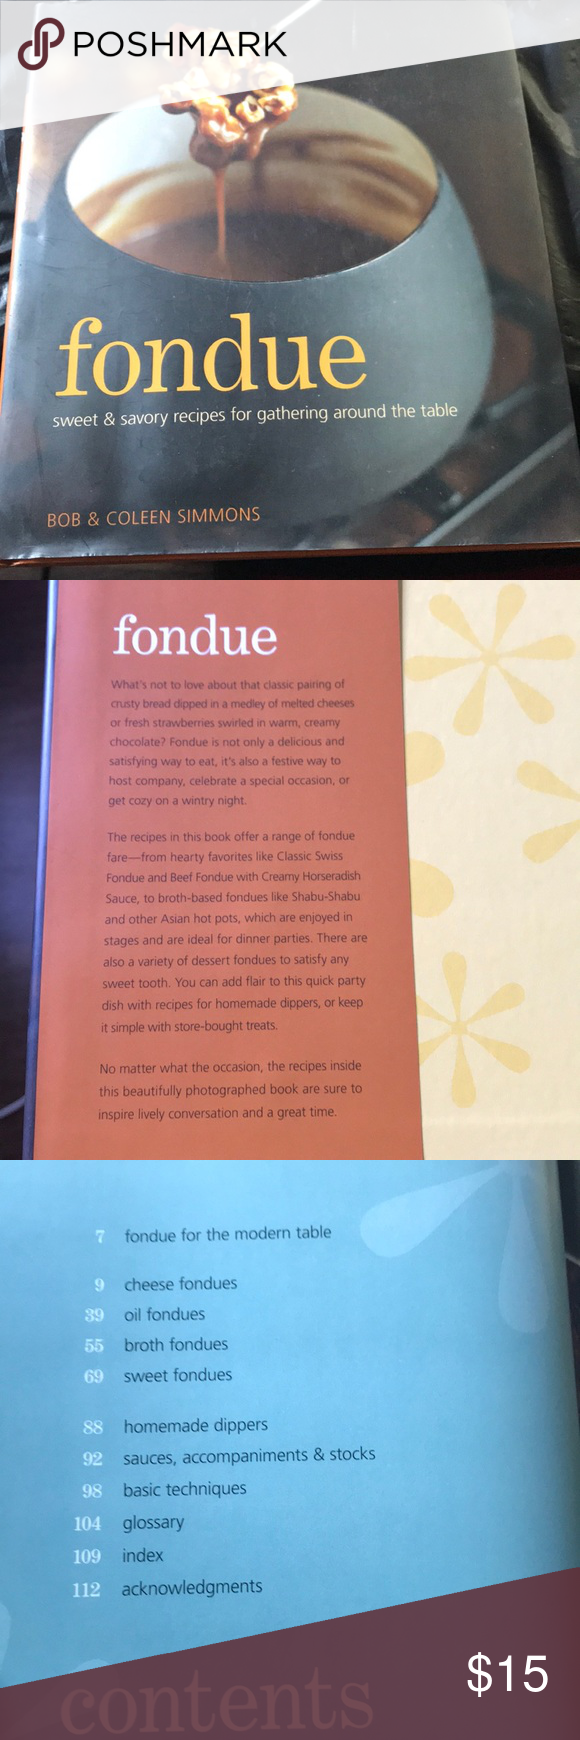 William Sonoma Fondue Recipe Book Very useful cook book  Outer paper wrap around shows flaws but book is in great condition  Lots of yummy recipes  Glossary of terms for beginners and helpful technique pages to learn more Williams Sonoma Kitchen Cookbooks #brothfonduerecipes